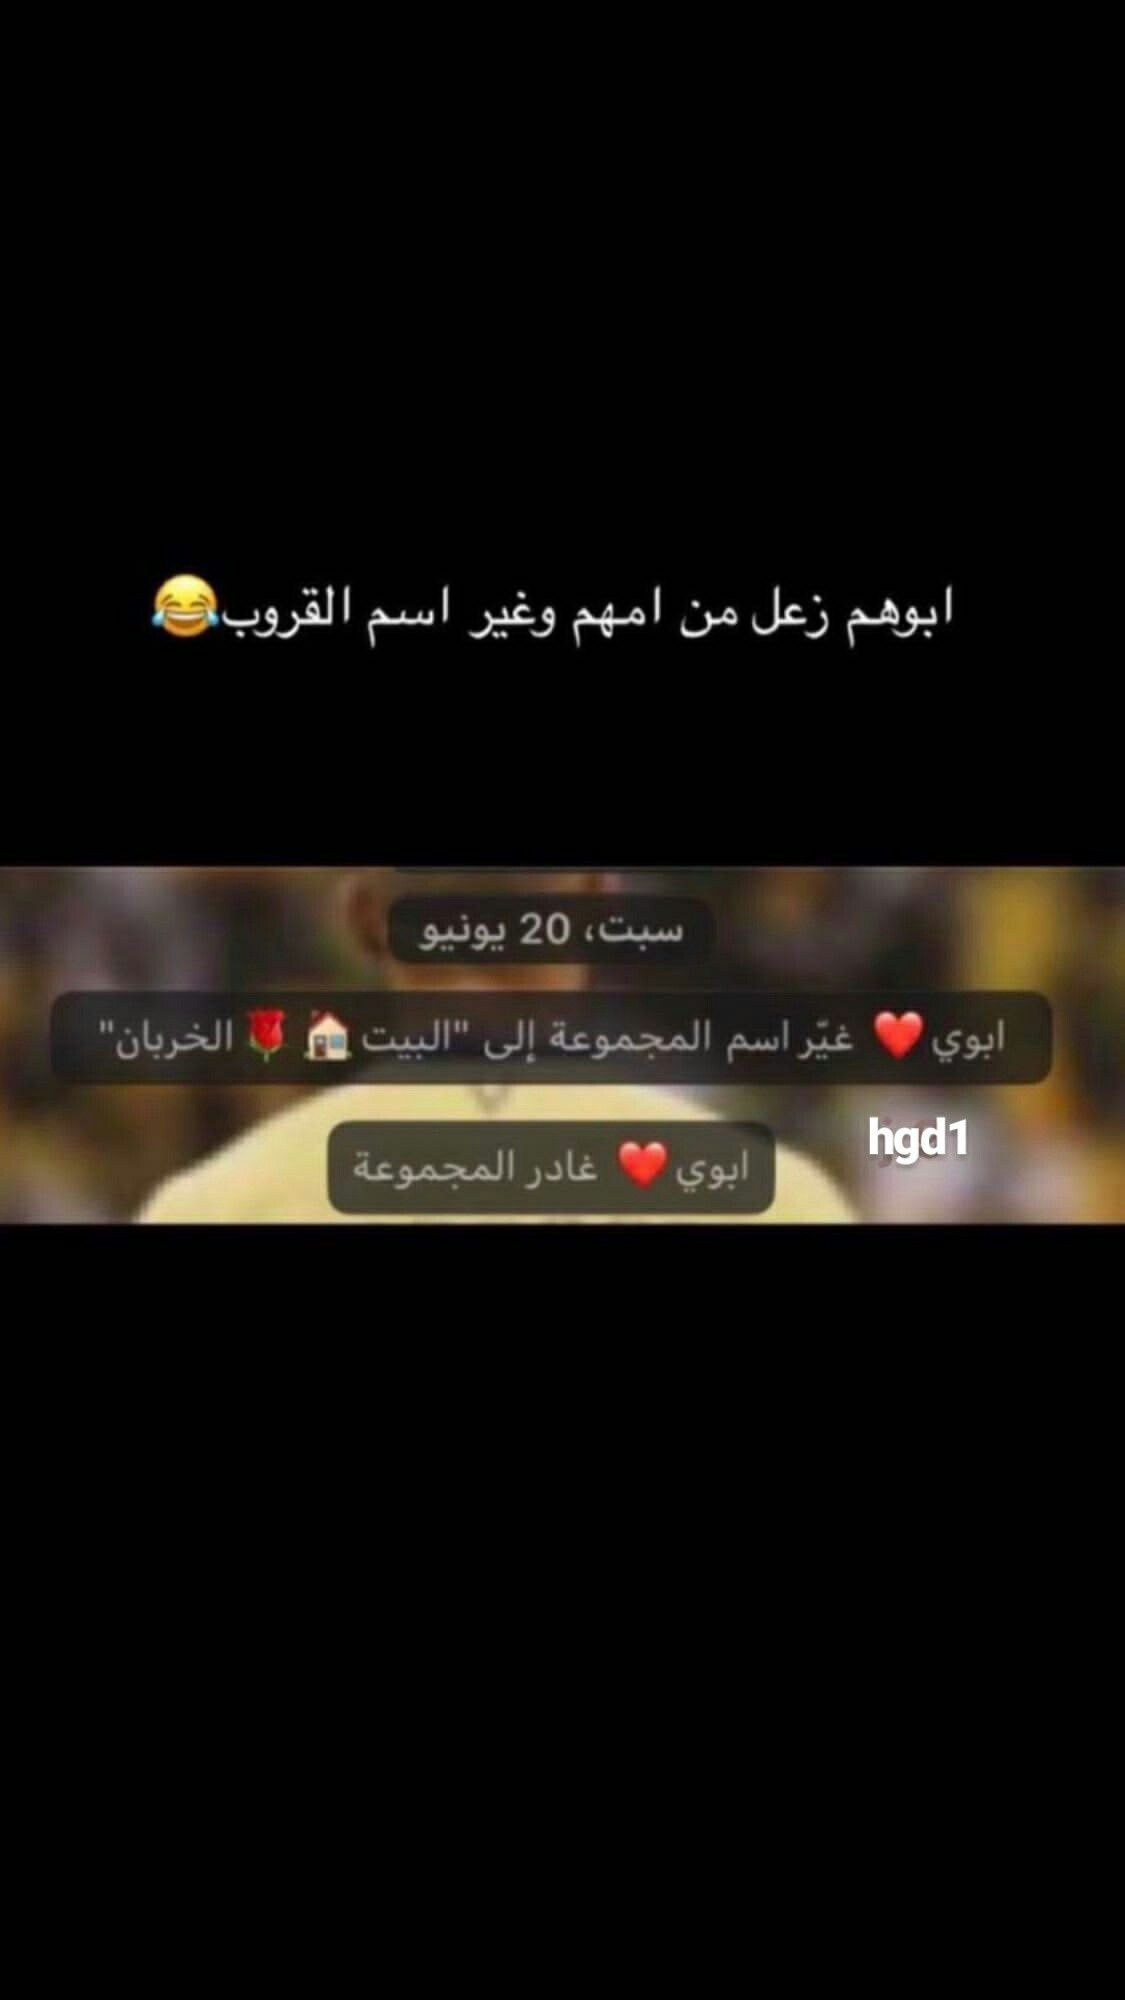 Pin By وحيده كالقمر On منوعاتي Funny Arabic Quotes Beautiful Arabic Words Funny Comments